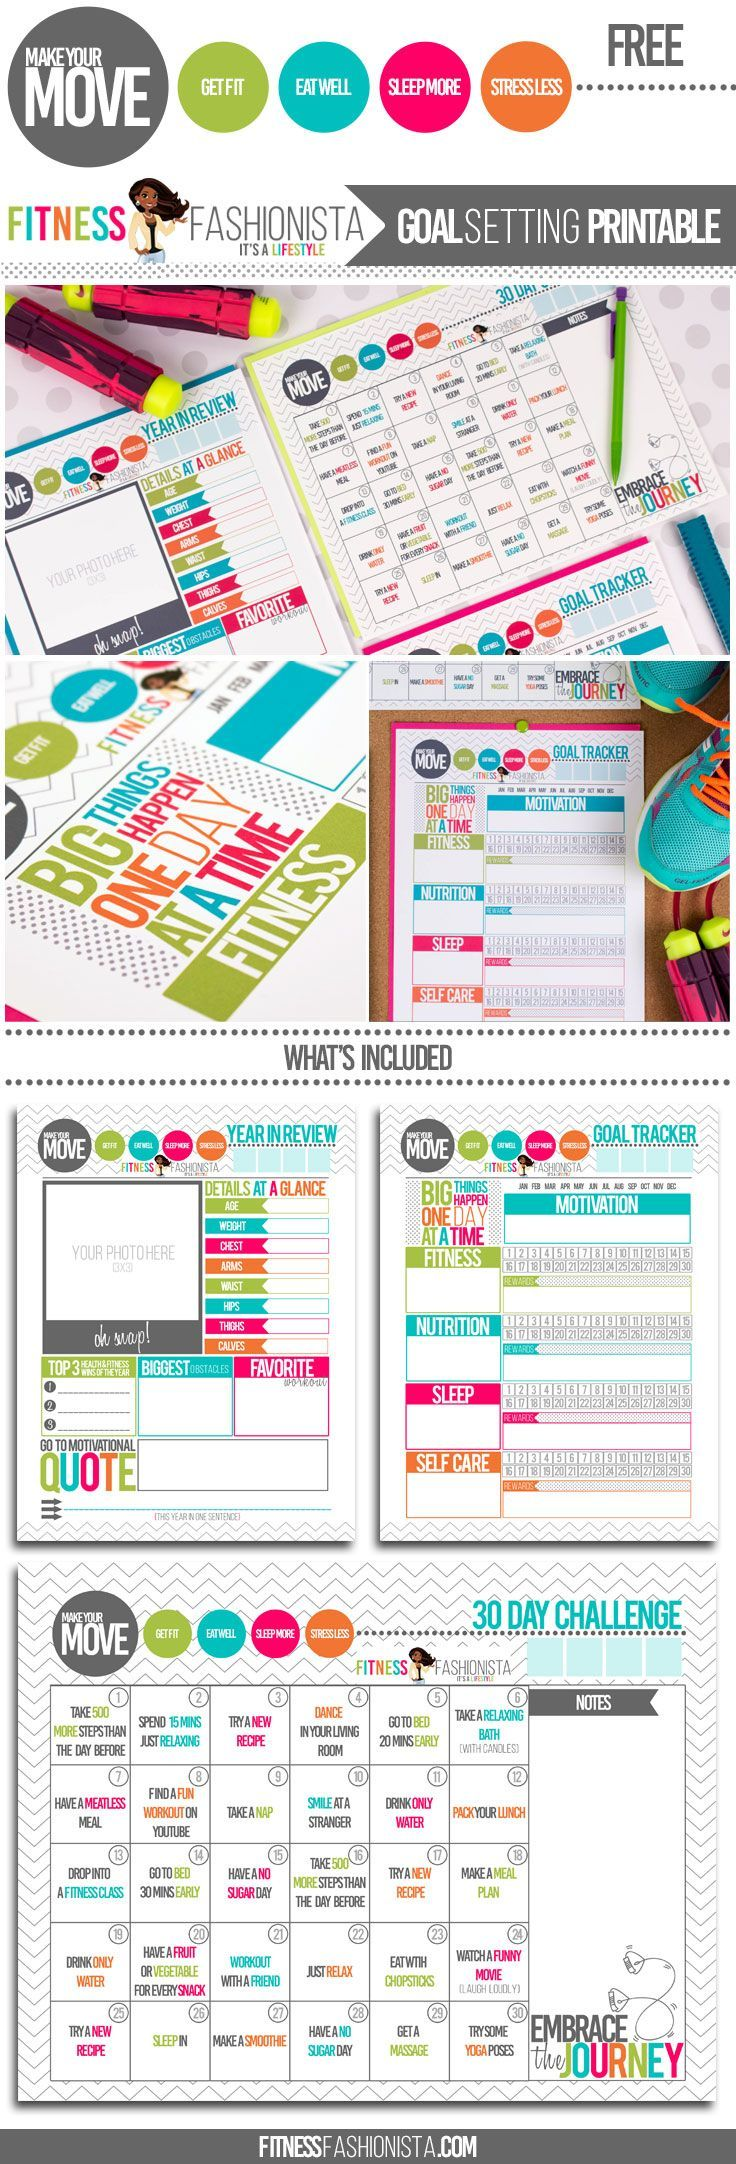 Don't just set goals this year #MakeYourMove and reach them with these free goal setting printables.